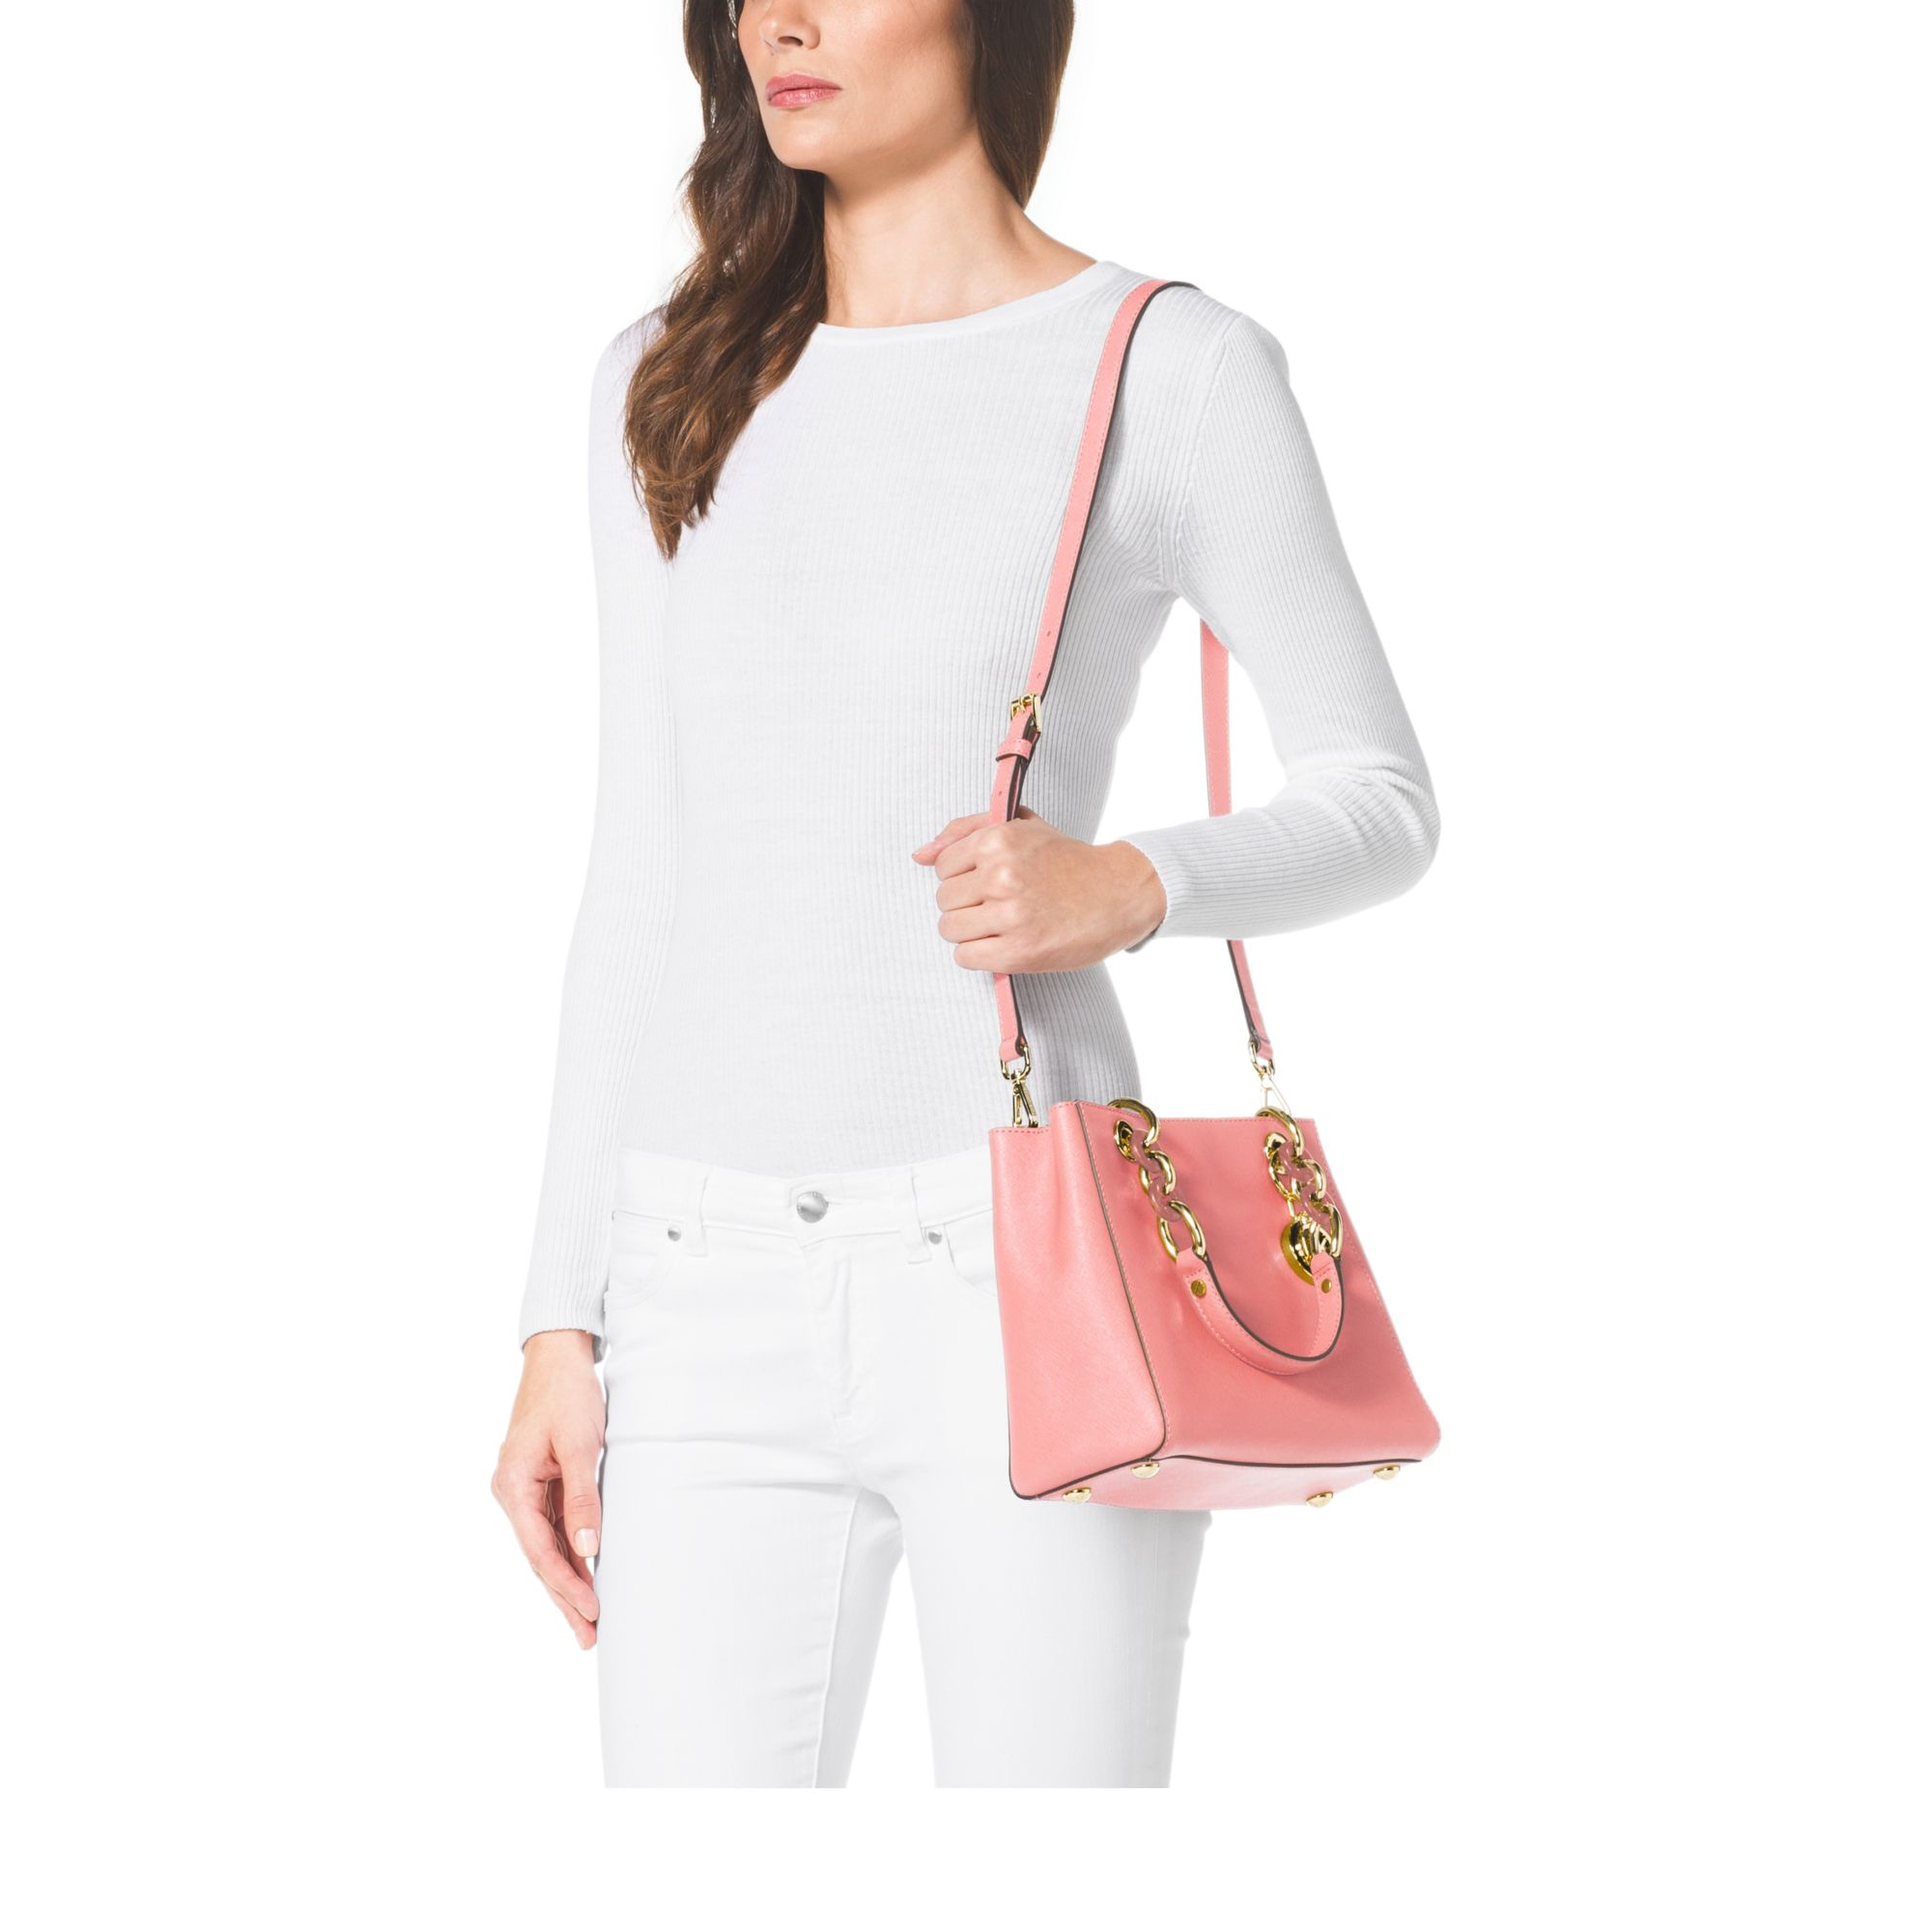 f052517e83aa Lyst - Michael Kors Cynthia Small Leather Satchel in Pink